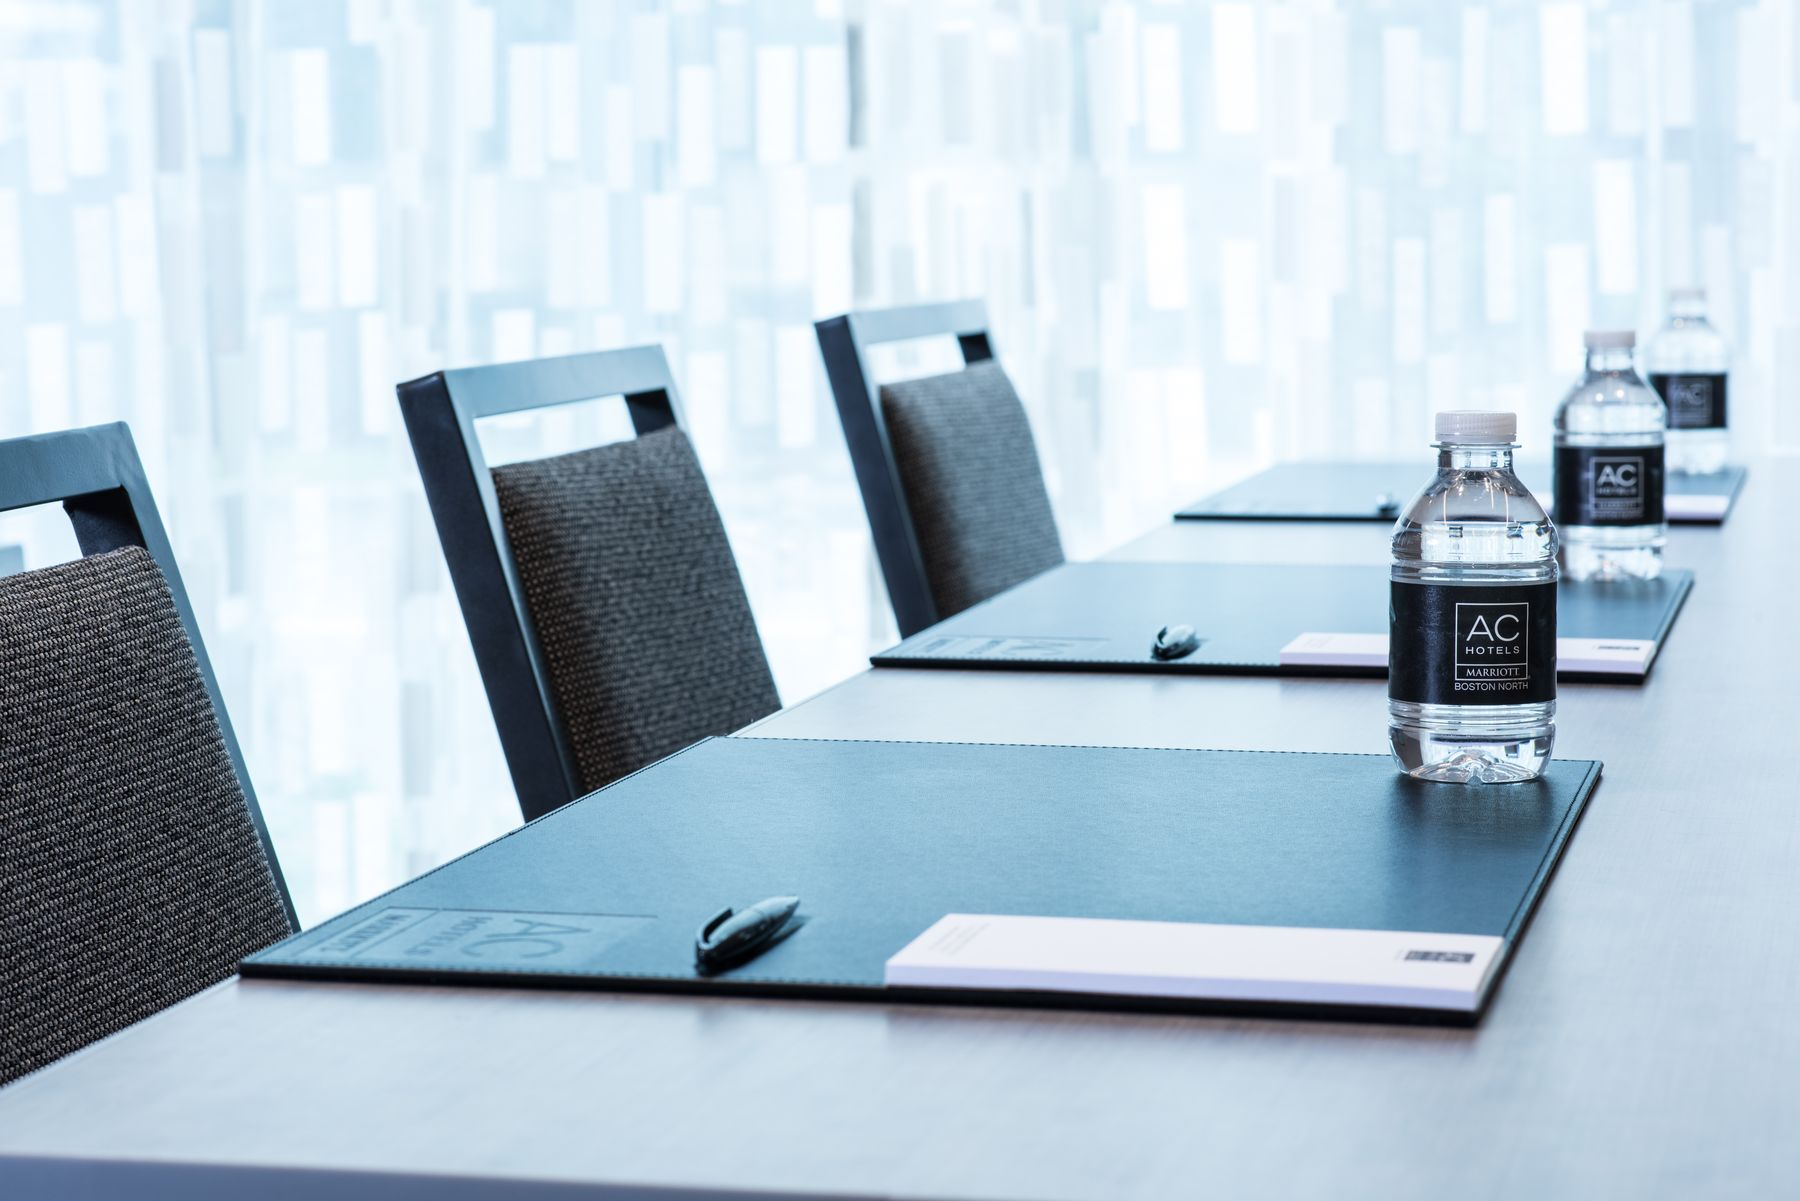 Conference table set with notepad and water bottle